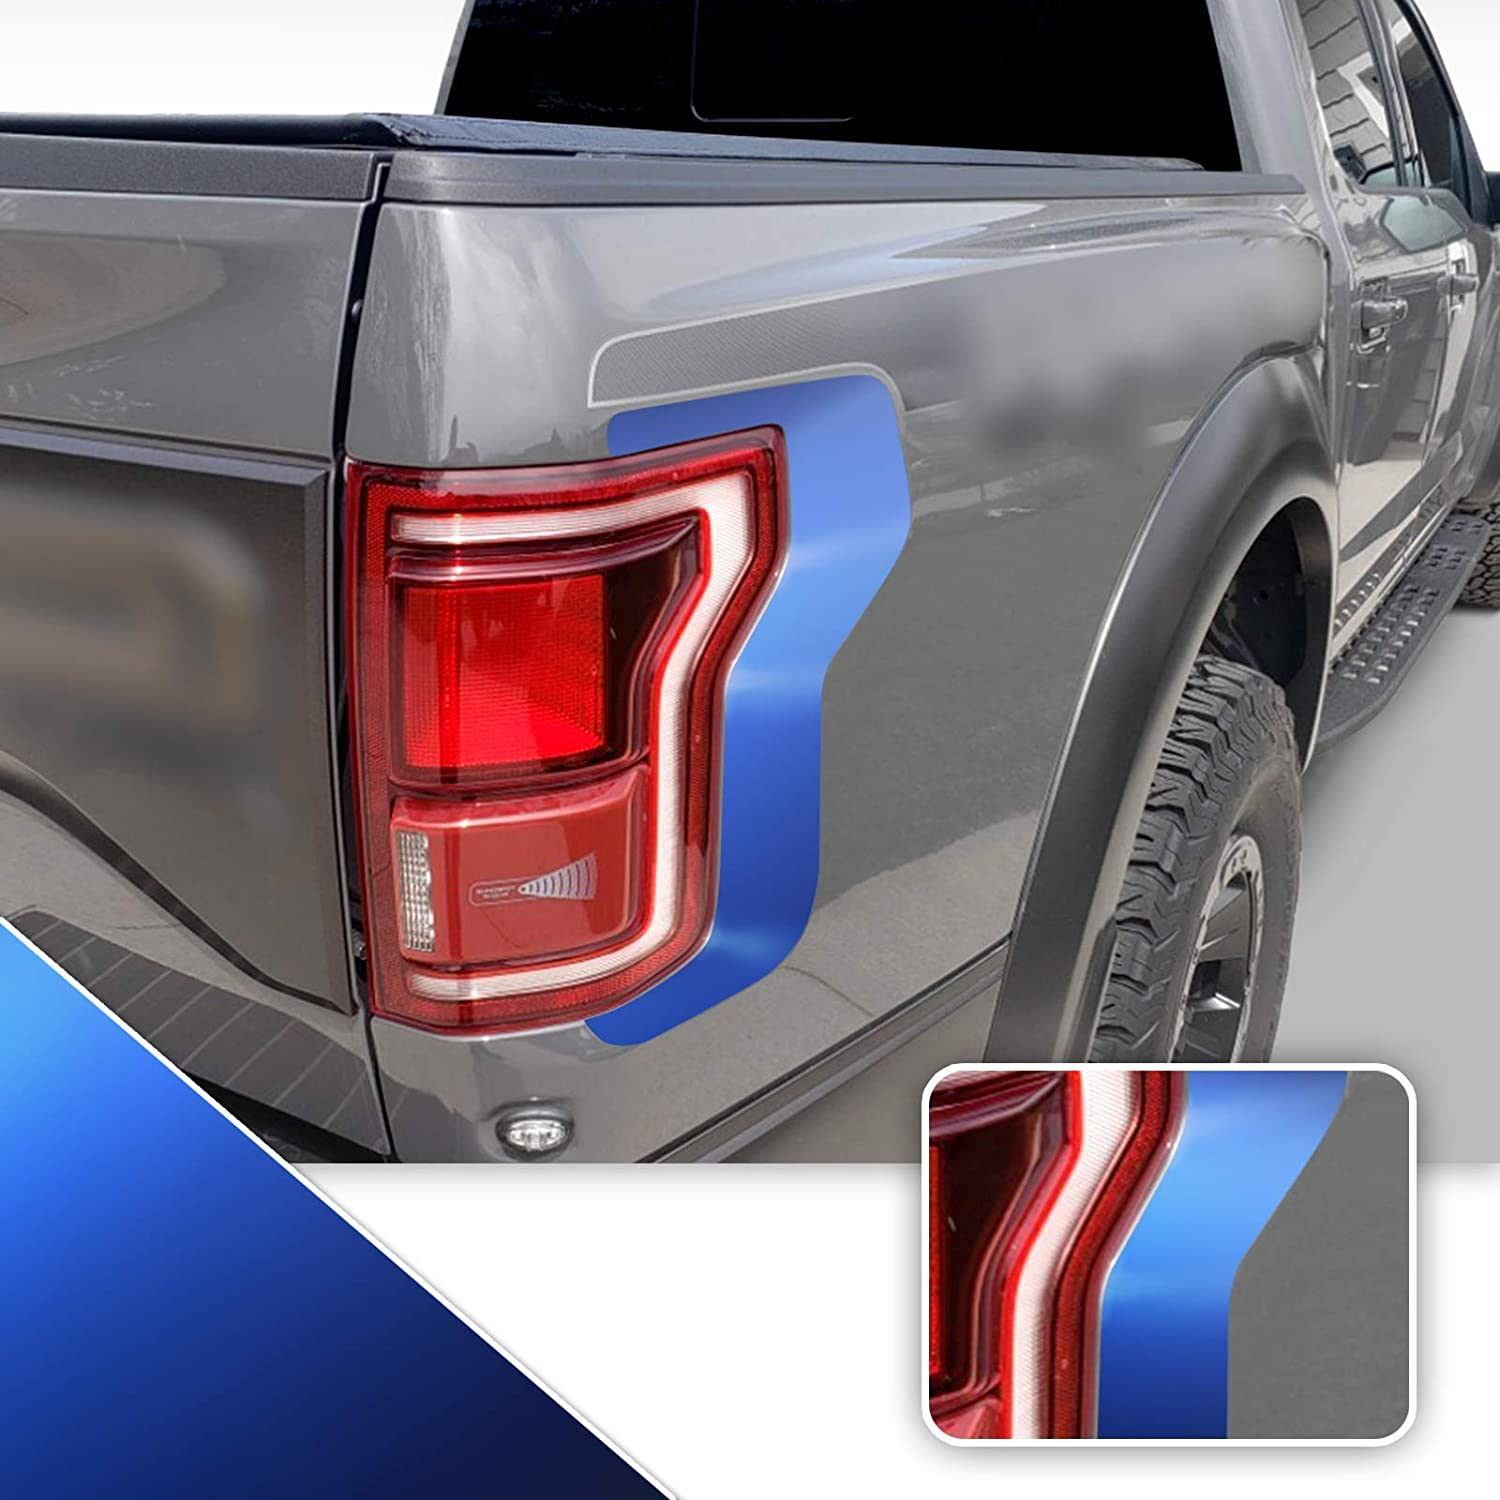 Tail Light Accent Vinyl Graphic Overlay Wrap Kit Compatible with Ford F-150 Raptor 2018 2019 2020 - Metallic Matte Chrome Blue